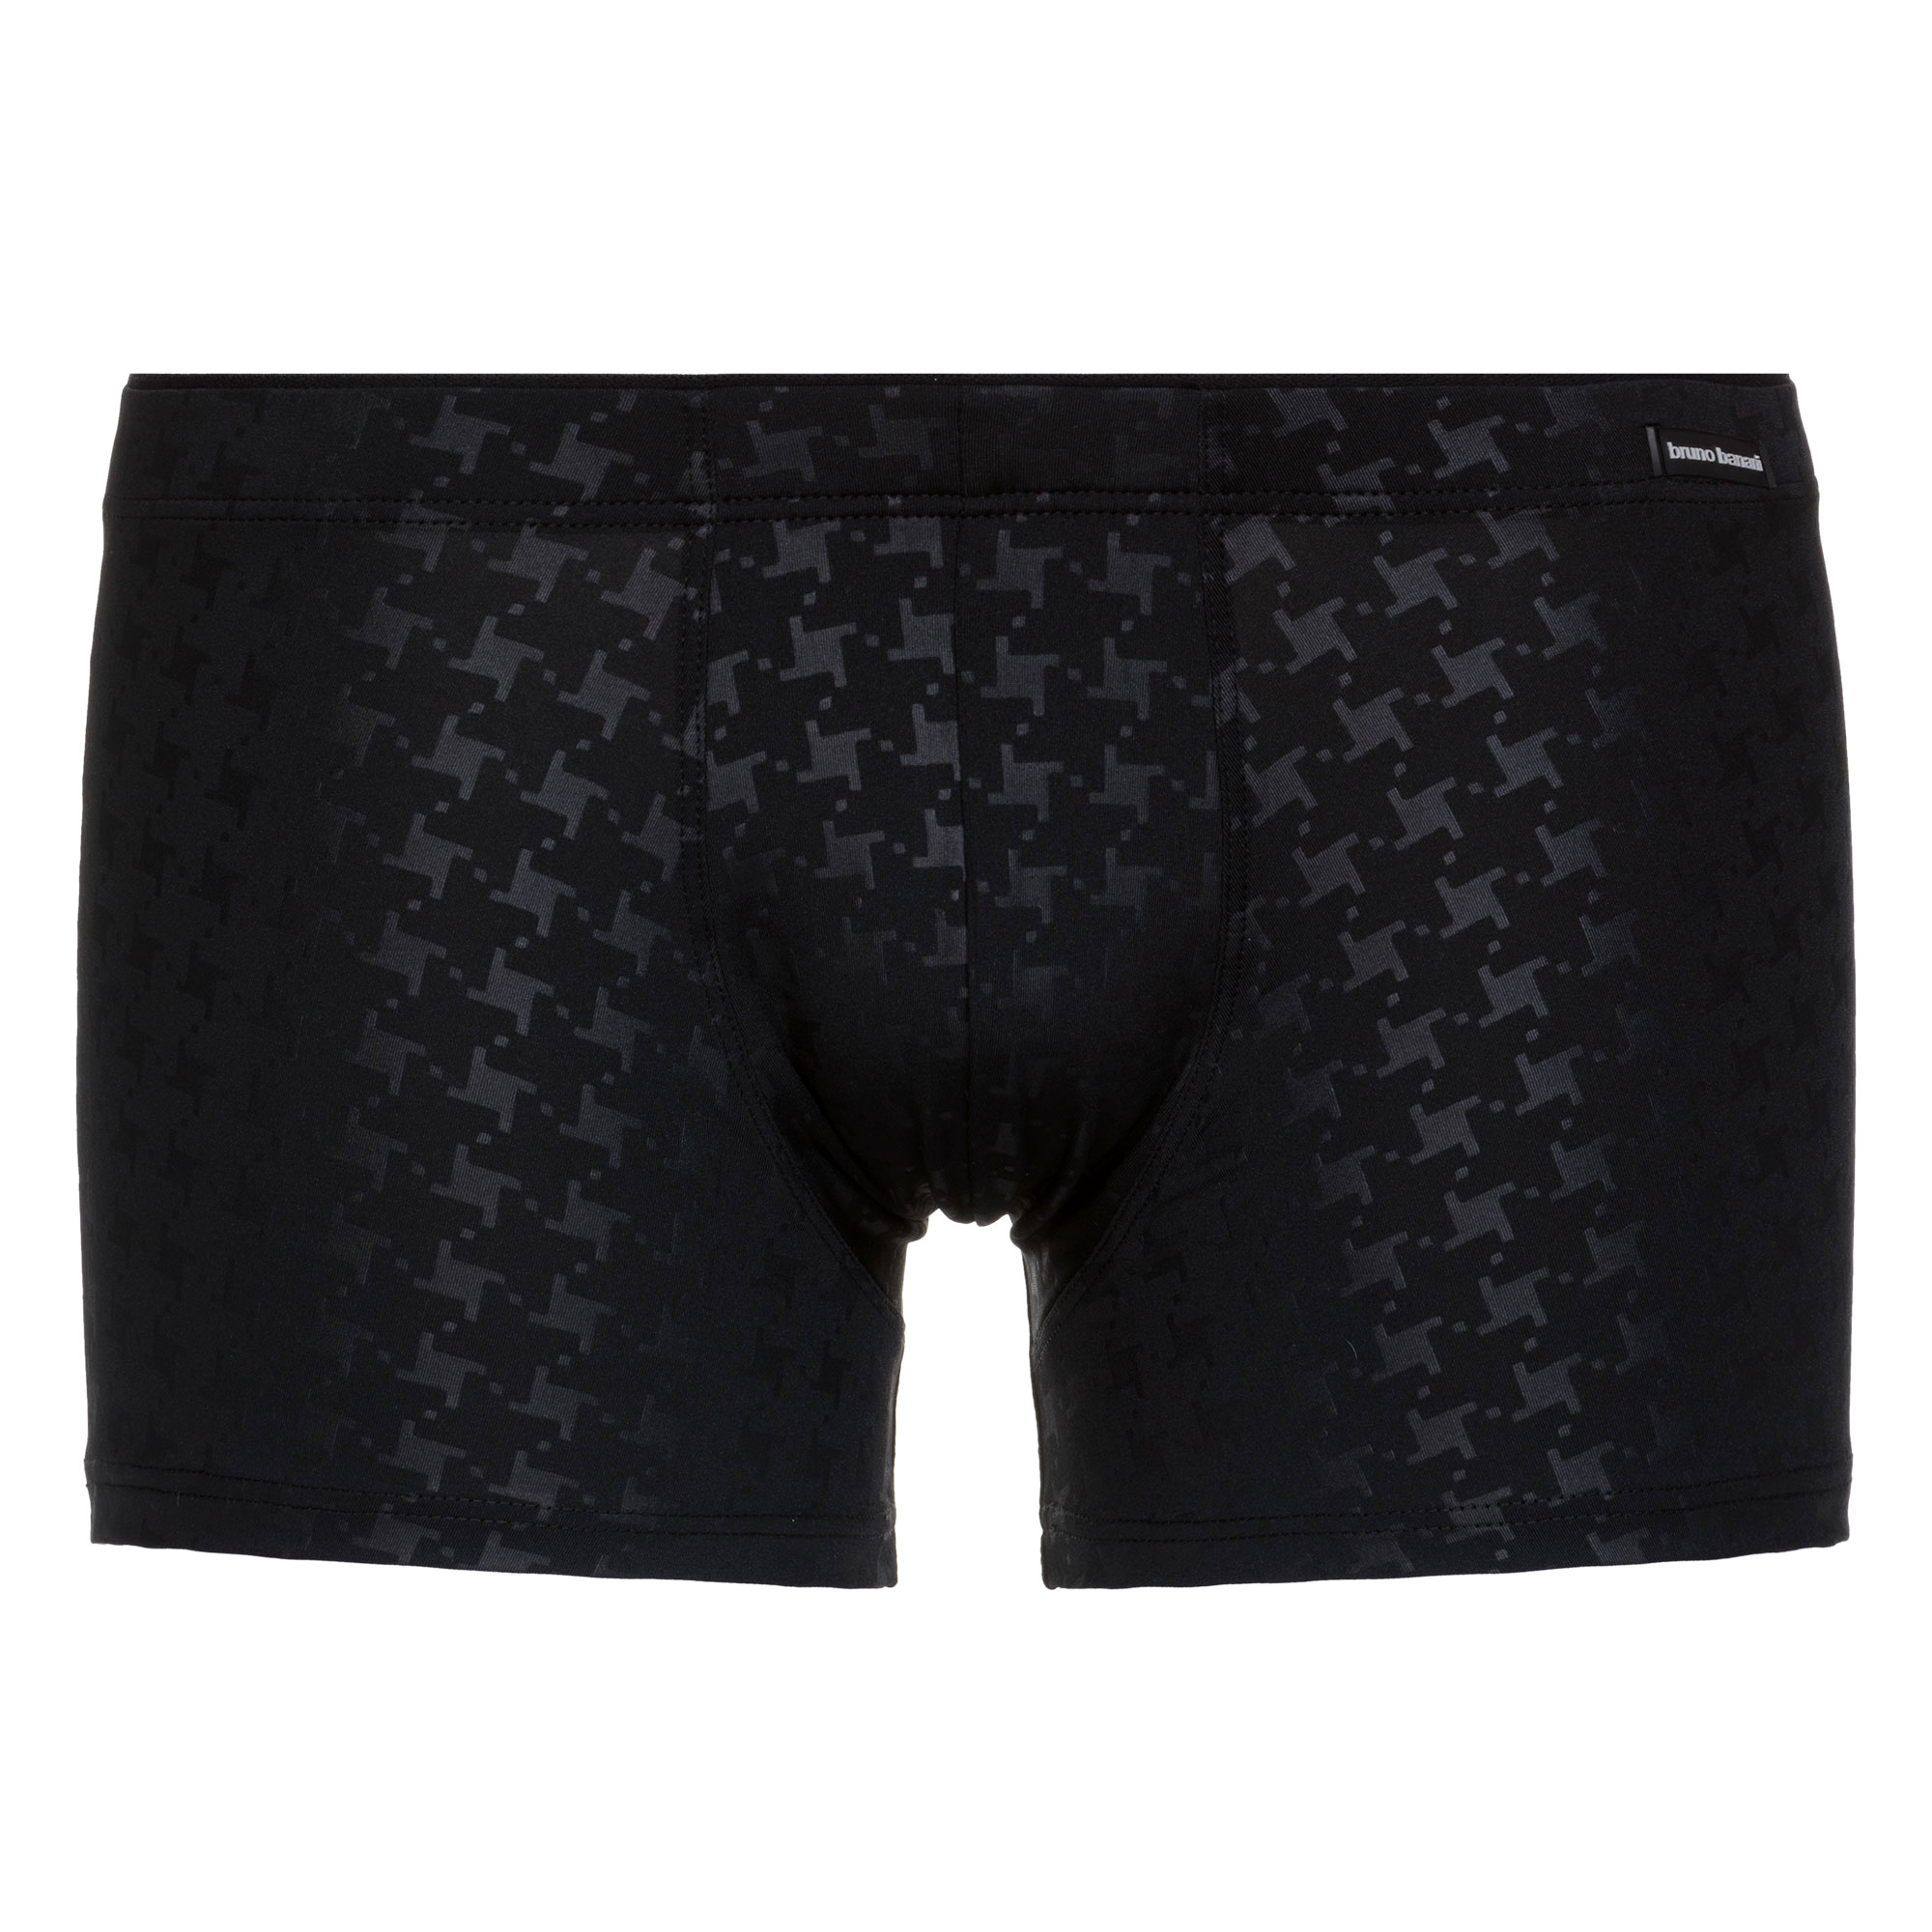 Pictures Online Mens Sportslip Absinth Boxer Briefs Bruno Banani Sale Many Kinds Of Buy Cheap View BdNamK2